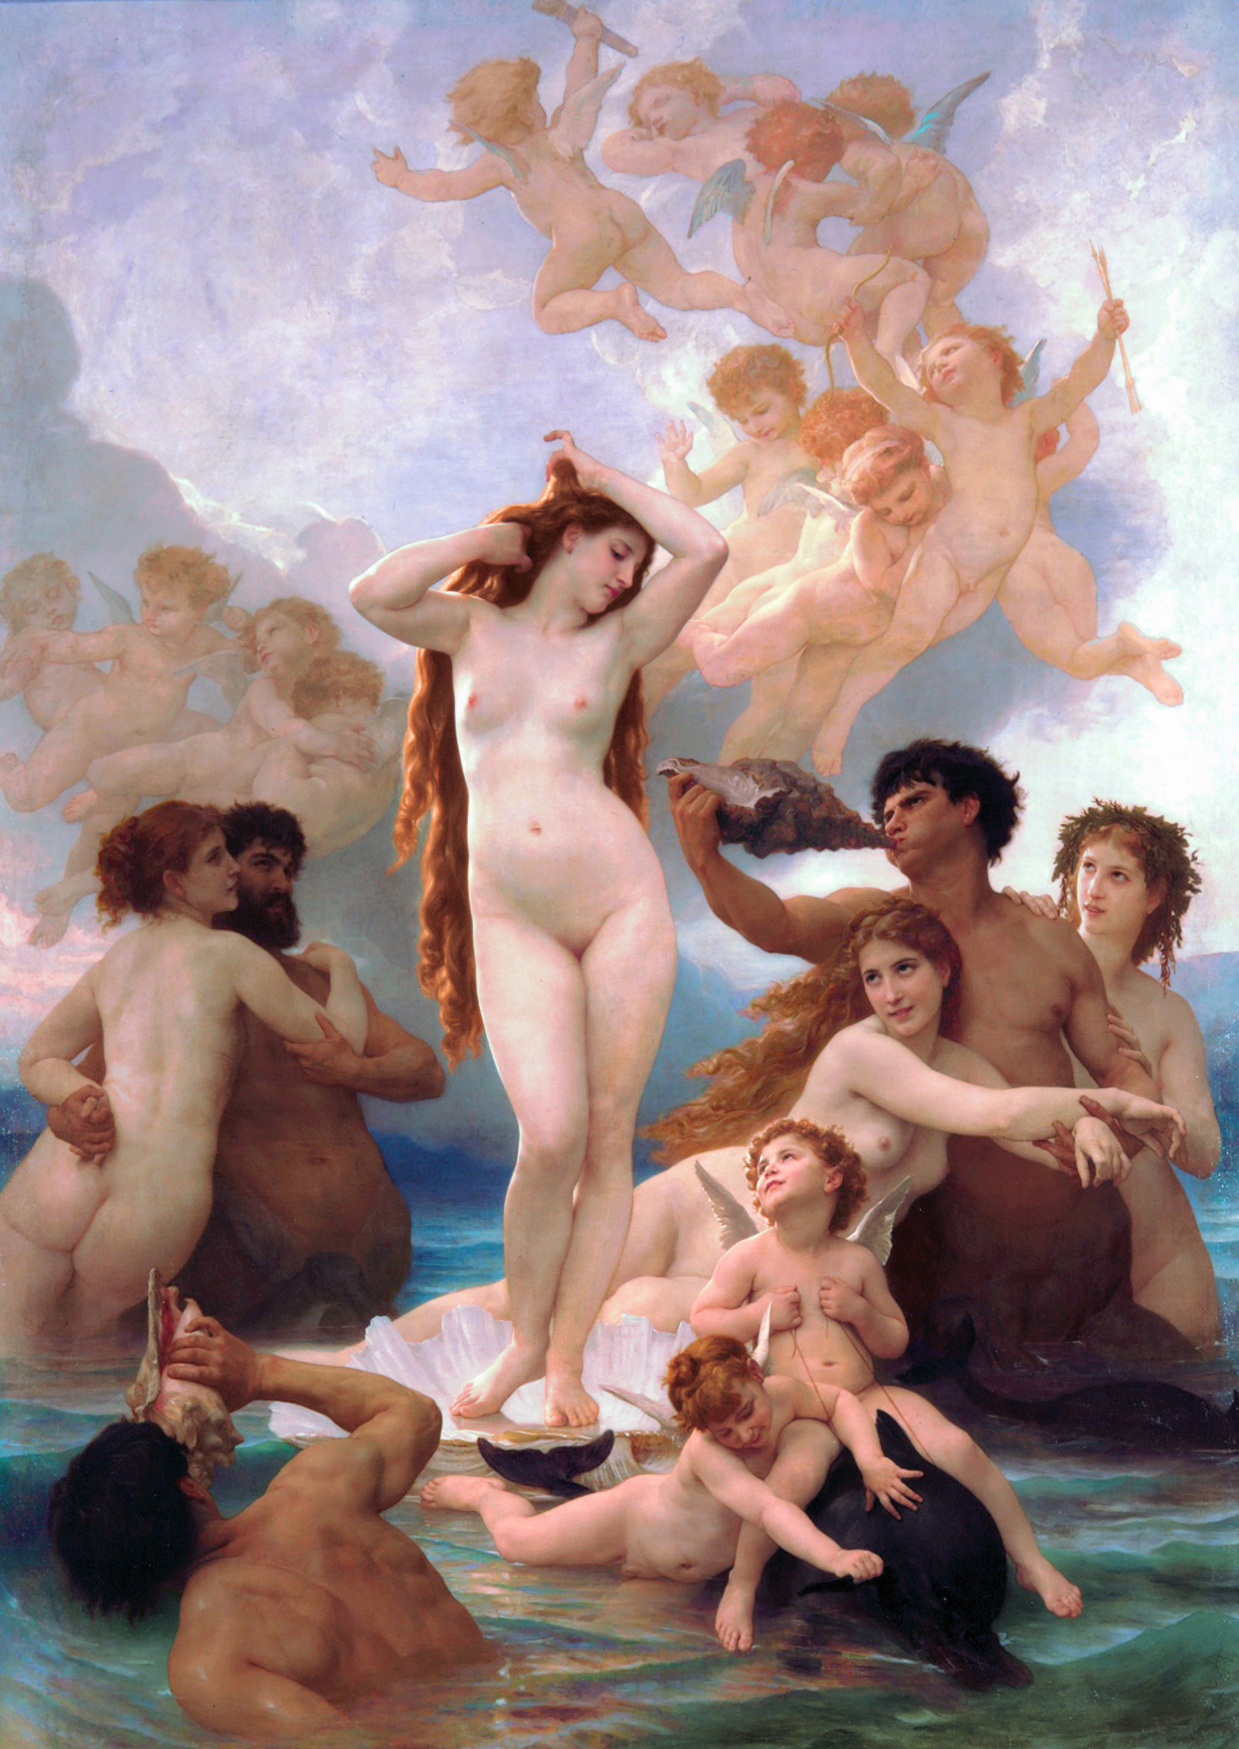 Well, Greek goddesses aphrodite naked